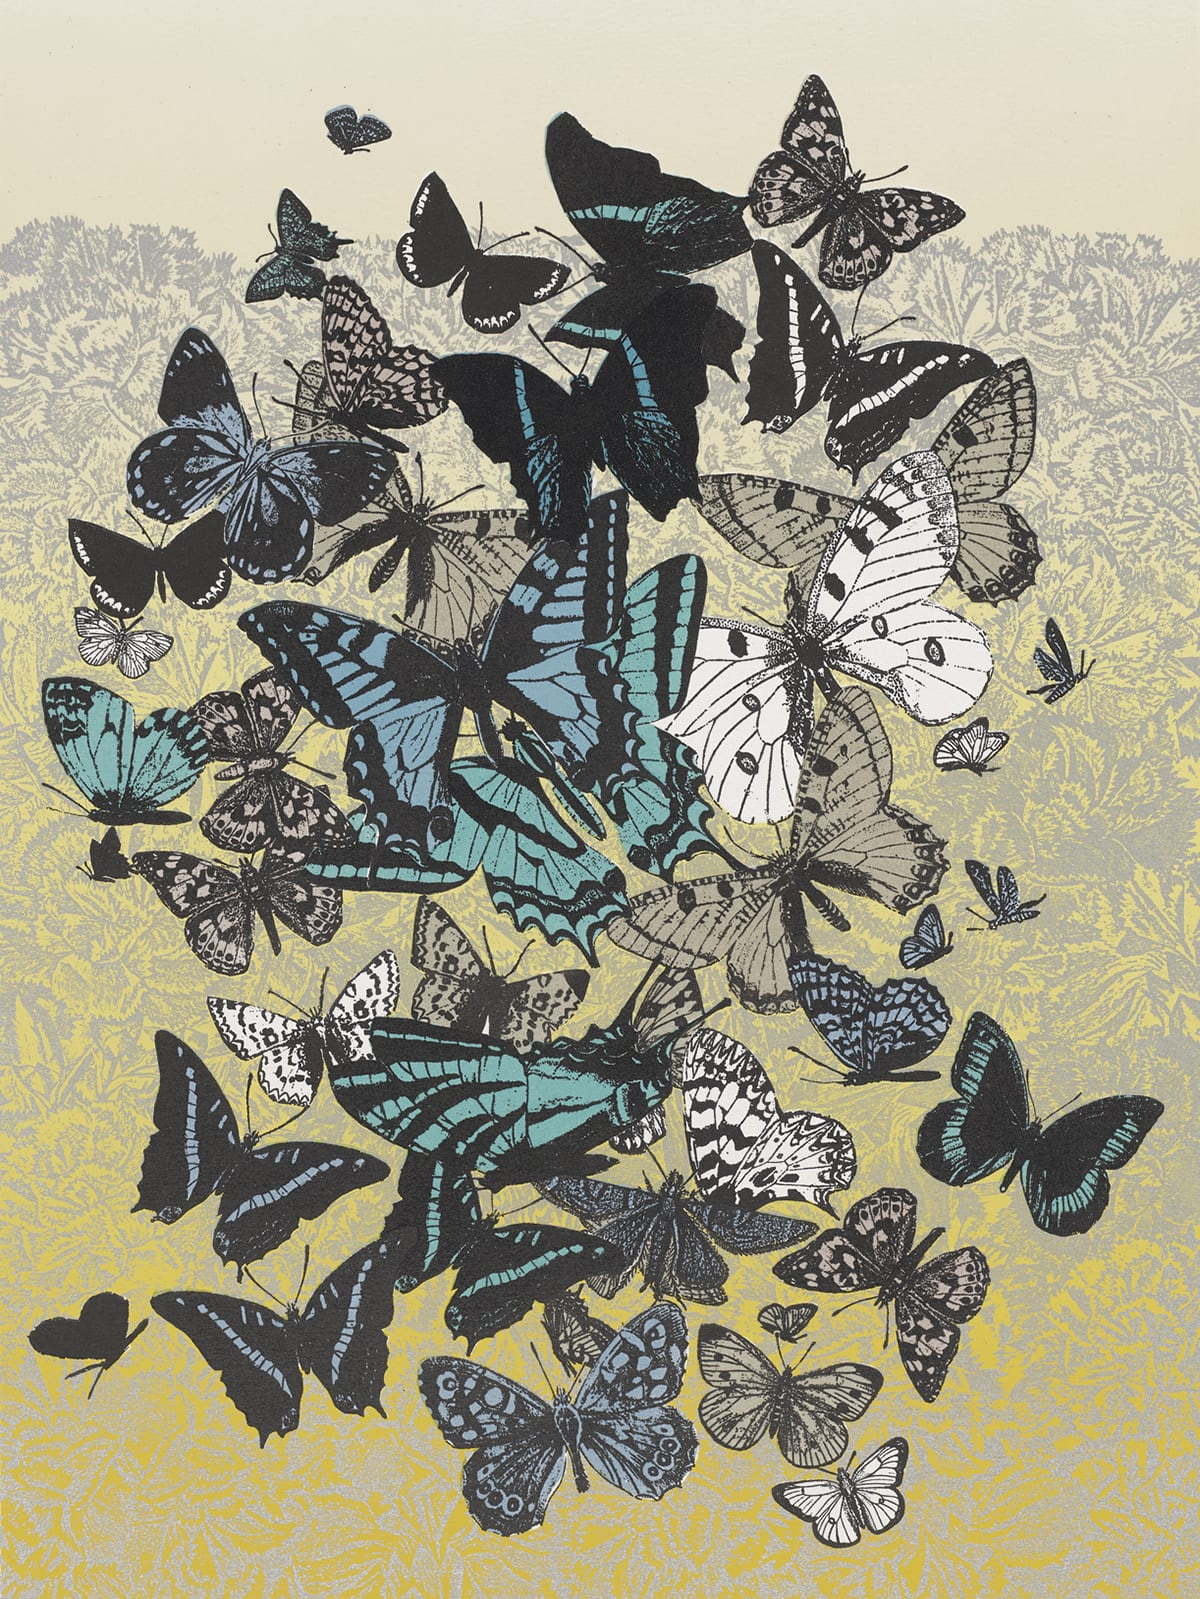 En no chōtachi (Garden of Butterflies), Yoshida Chizuko, 18 1/8 x 13 1/2 inches; sheet: 26 x 19 5/8 inches, color woodblock print with metallic pigment on paper. A vertical, rectangular print showing a mass of butterflies in black, blues, white, and gray over a silver metallic and yellow foliage patterned background. The butterflies are massed mostly in the center of the work leaving a border around them at the edges. They vary in type, color, size, and position. Most prominently, there is a white butterfly with black dotted wings at two o'clock, two in shades of turquoise and pale blue at center that overlap and above them is a black butterfly with pale-blue striped wings. They are surrounded by many others seen from the front with wings spread, from the side, and from above. They vary in pattern from dots to stripes to fine lines to intricately patterned wings. This mass of butterflies is superimposed over a dense, silver metallic foliage printed on paper that begins as pale beige and deepens to a bright yellow as it approaches the bottom of the print.